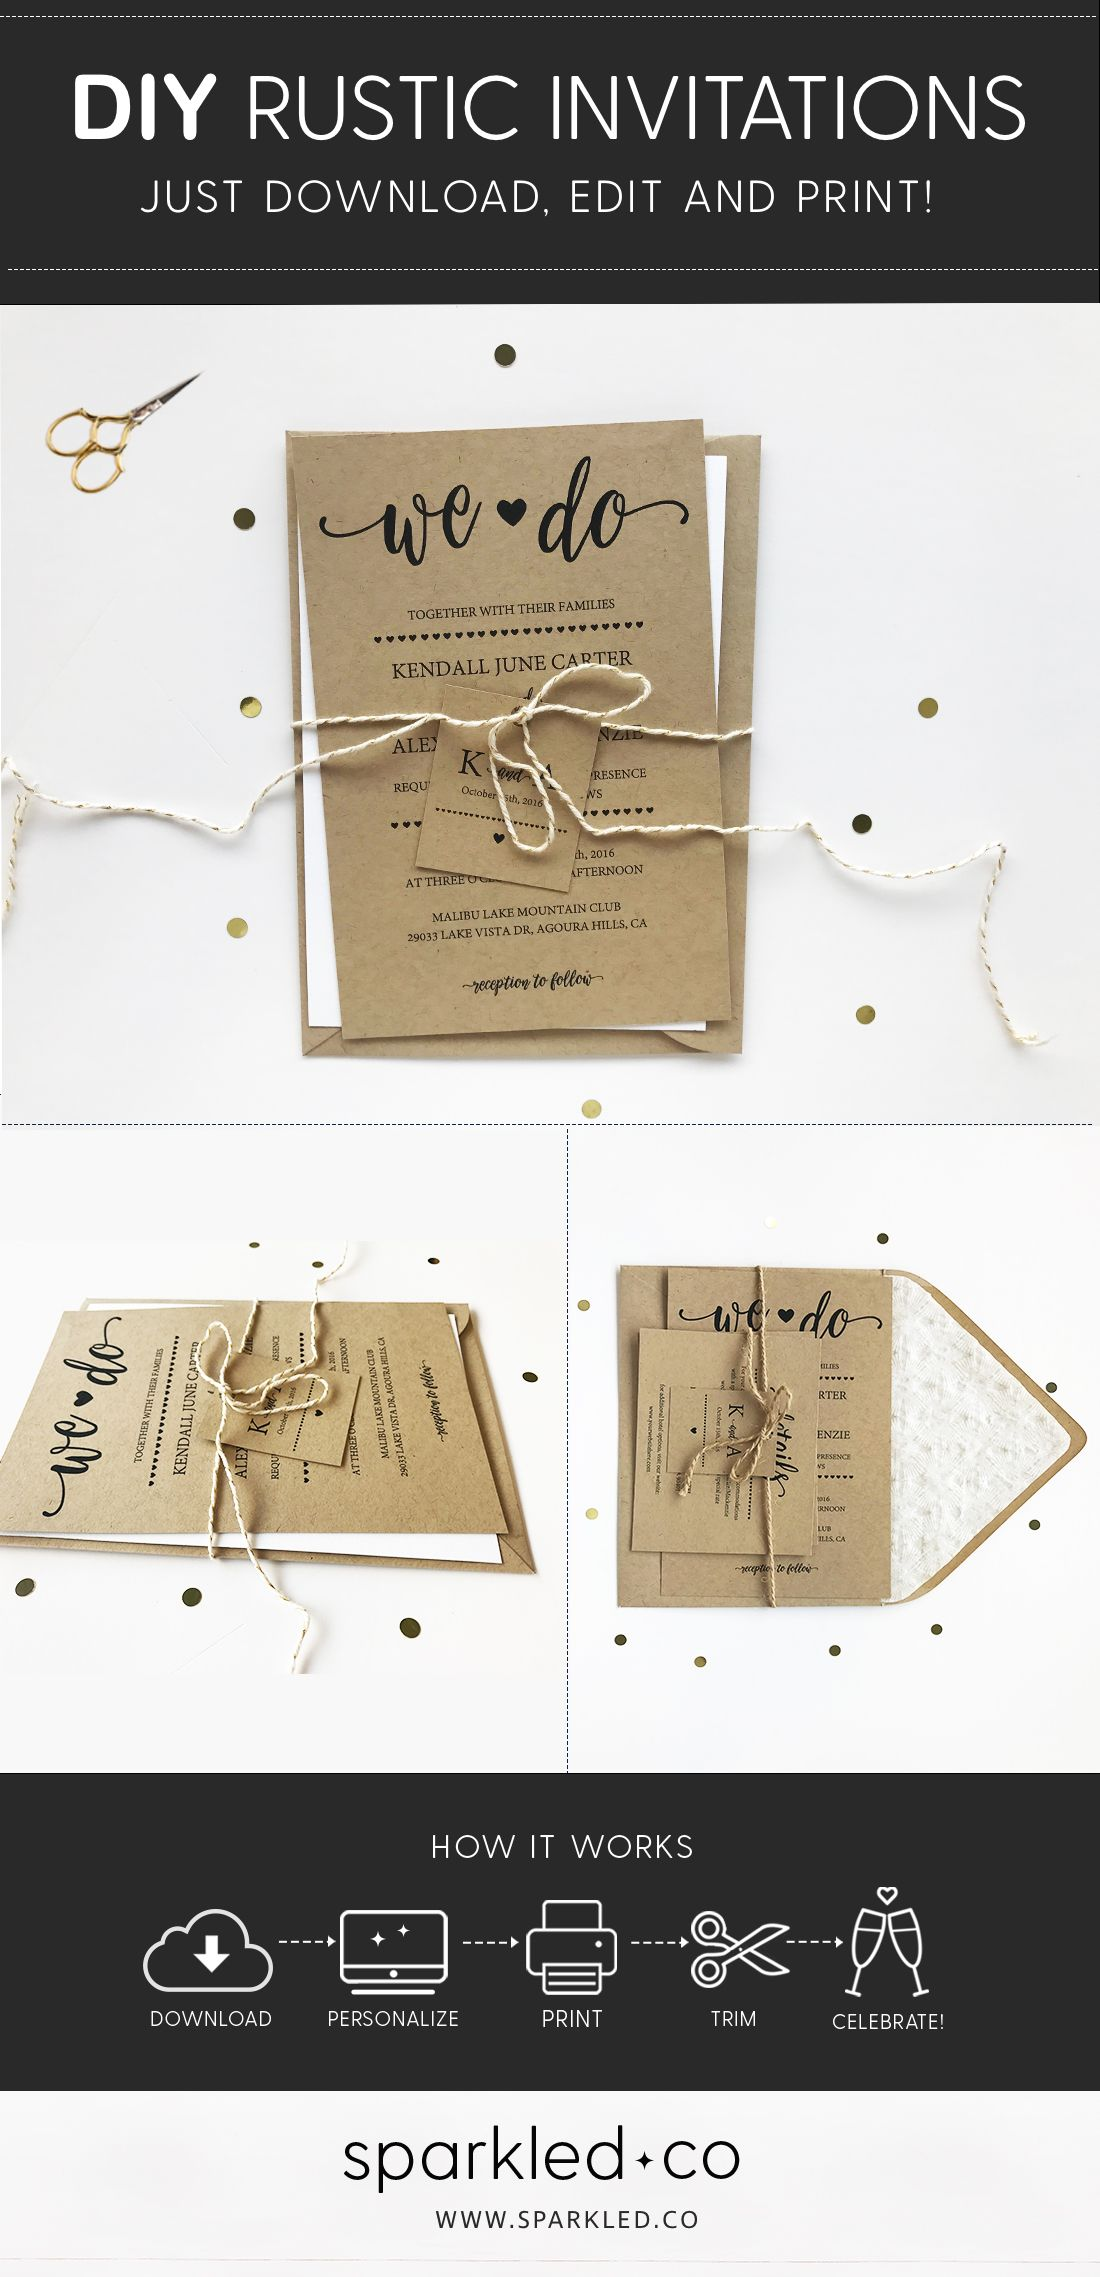 Diy rustic wedding invitations instantly download edit and print